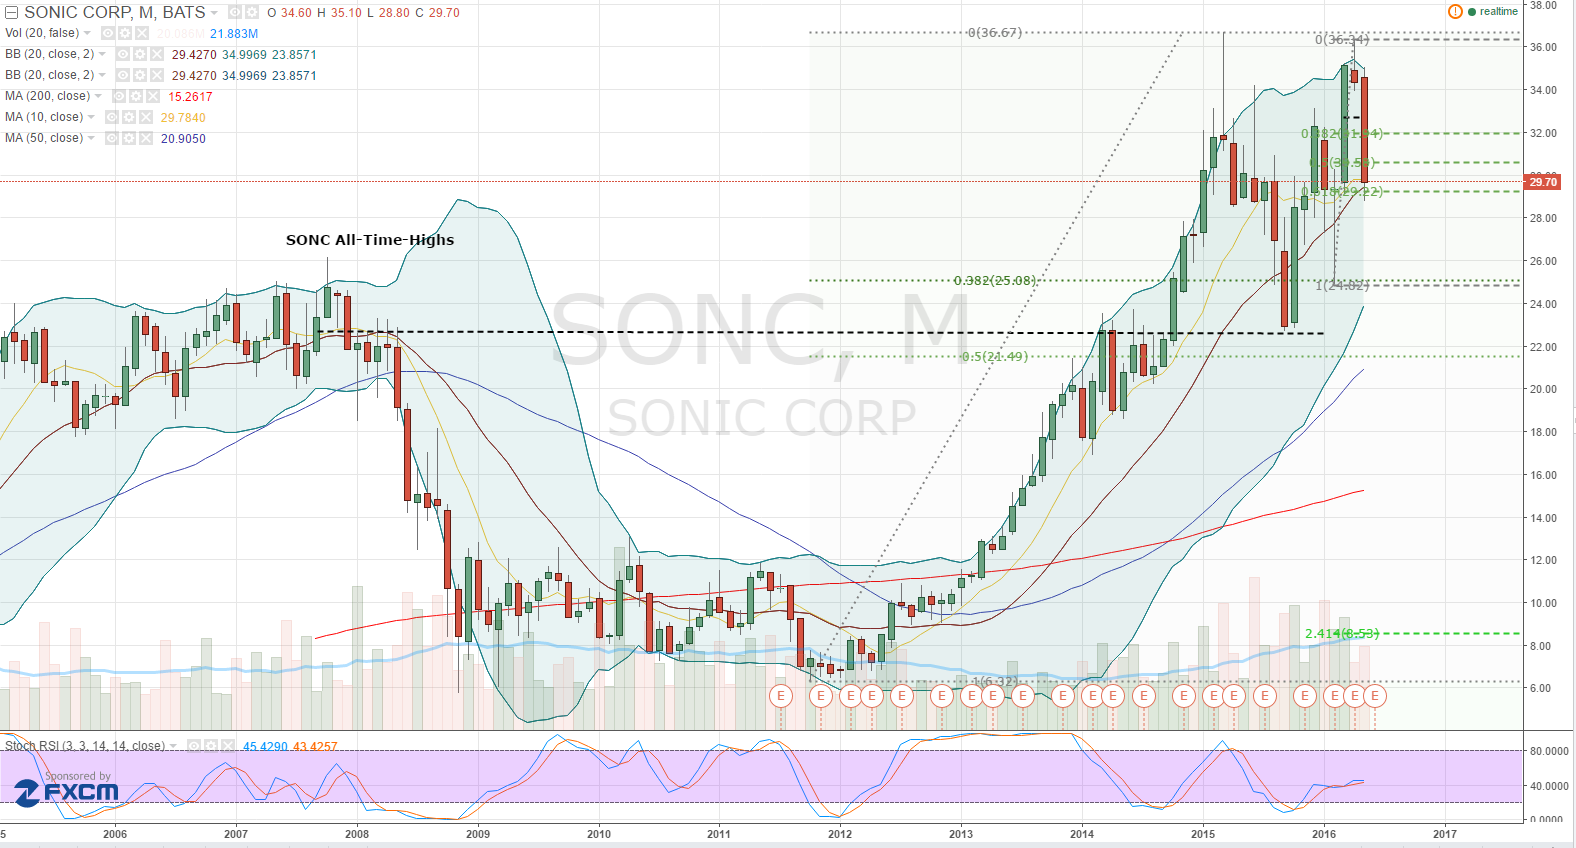 052616-sonc-stock-chart